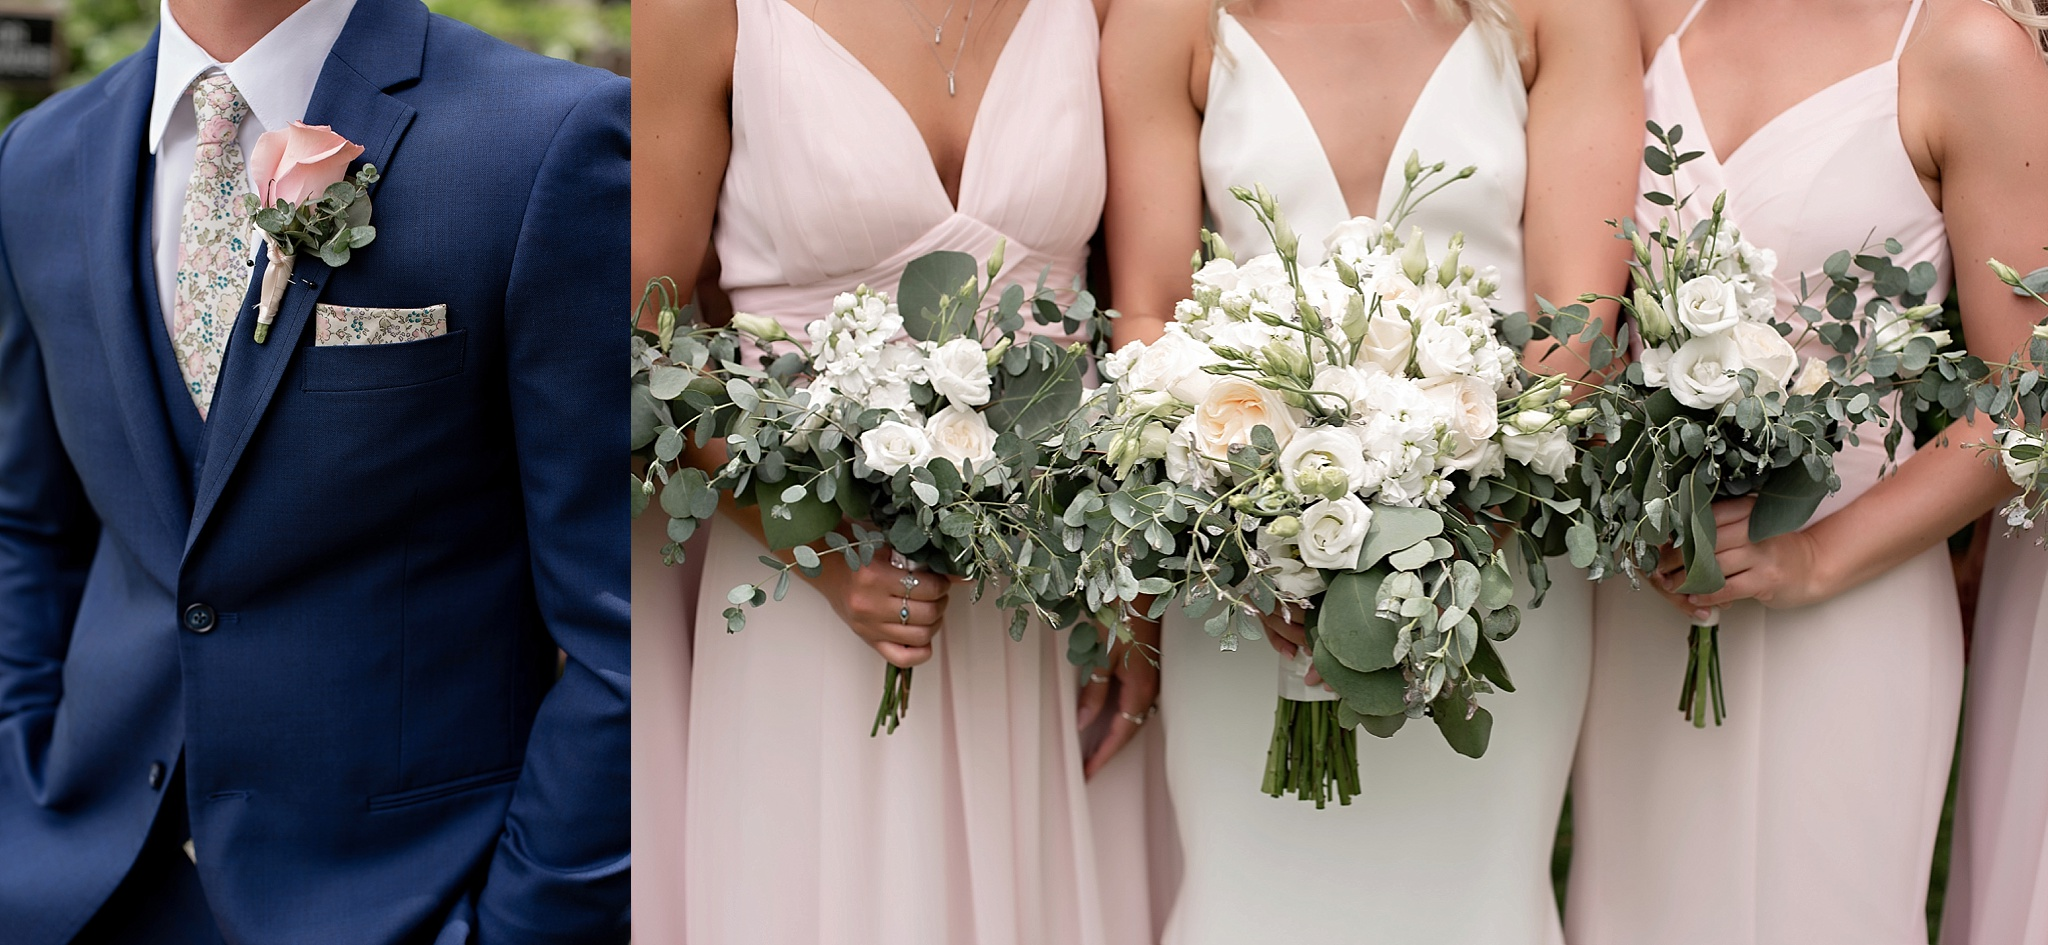 bridal details blush white and navy blue with white florals and eucalyptus greenery the flower mill sioux falls sd